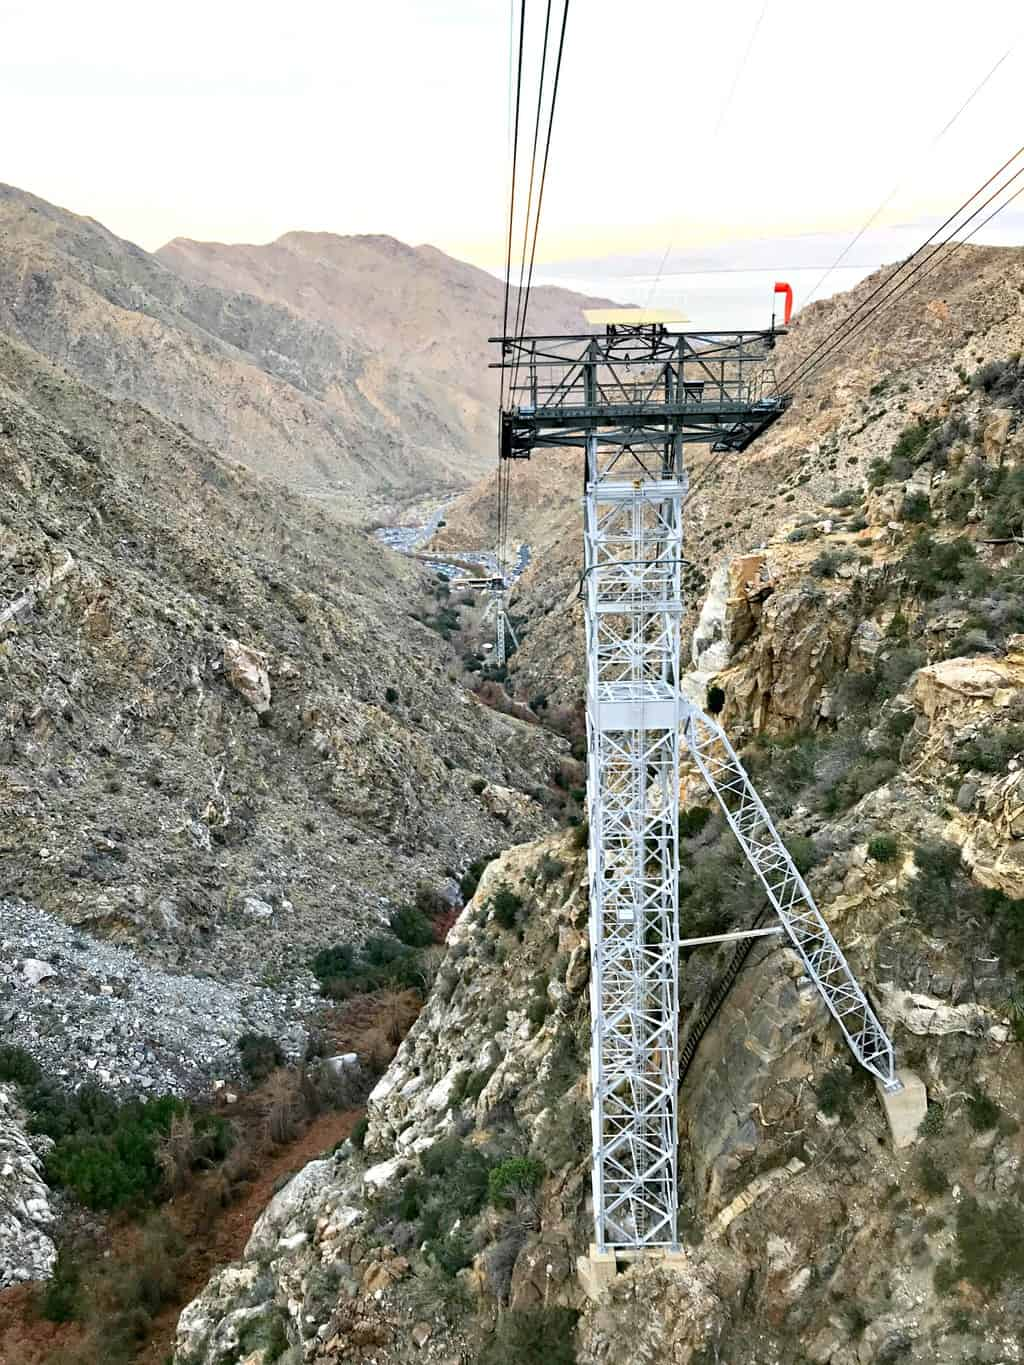 Taking a ride on the Palm Springs Aerial Tram